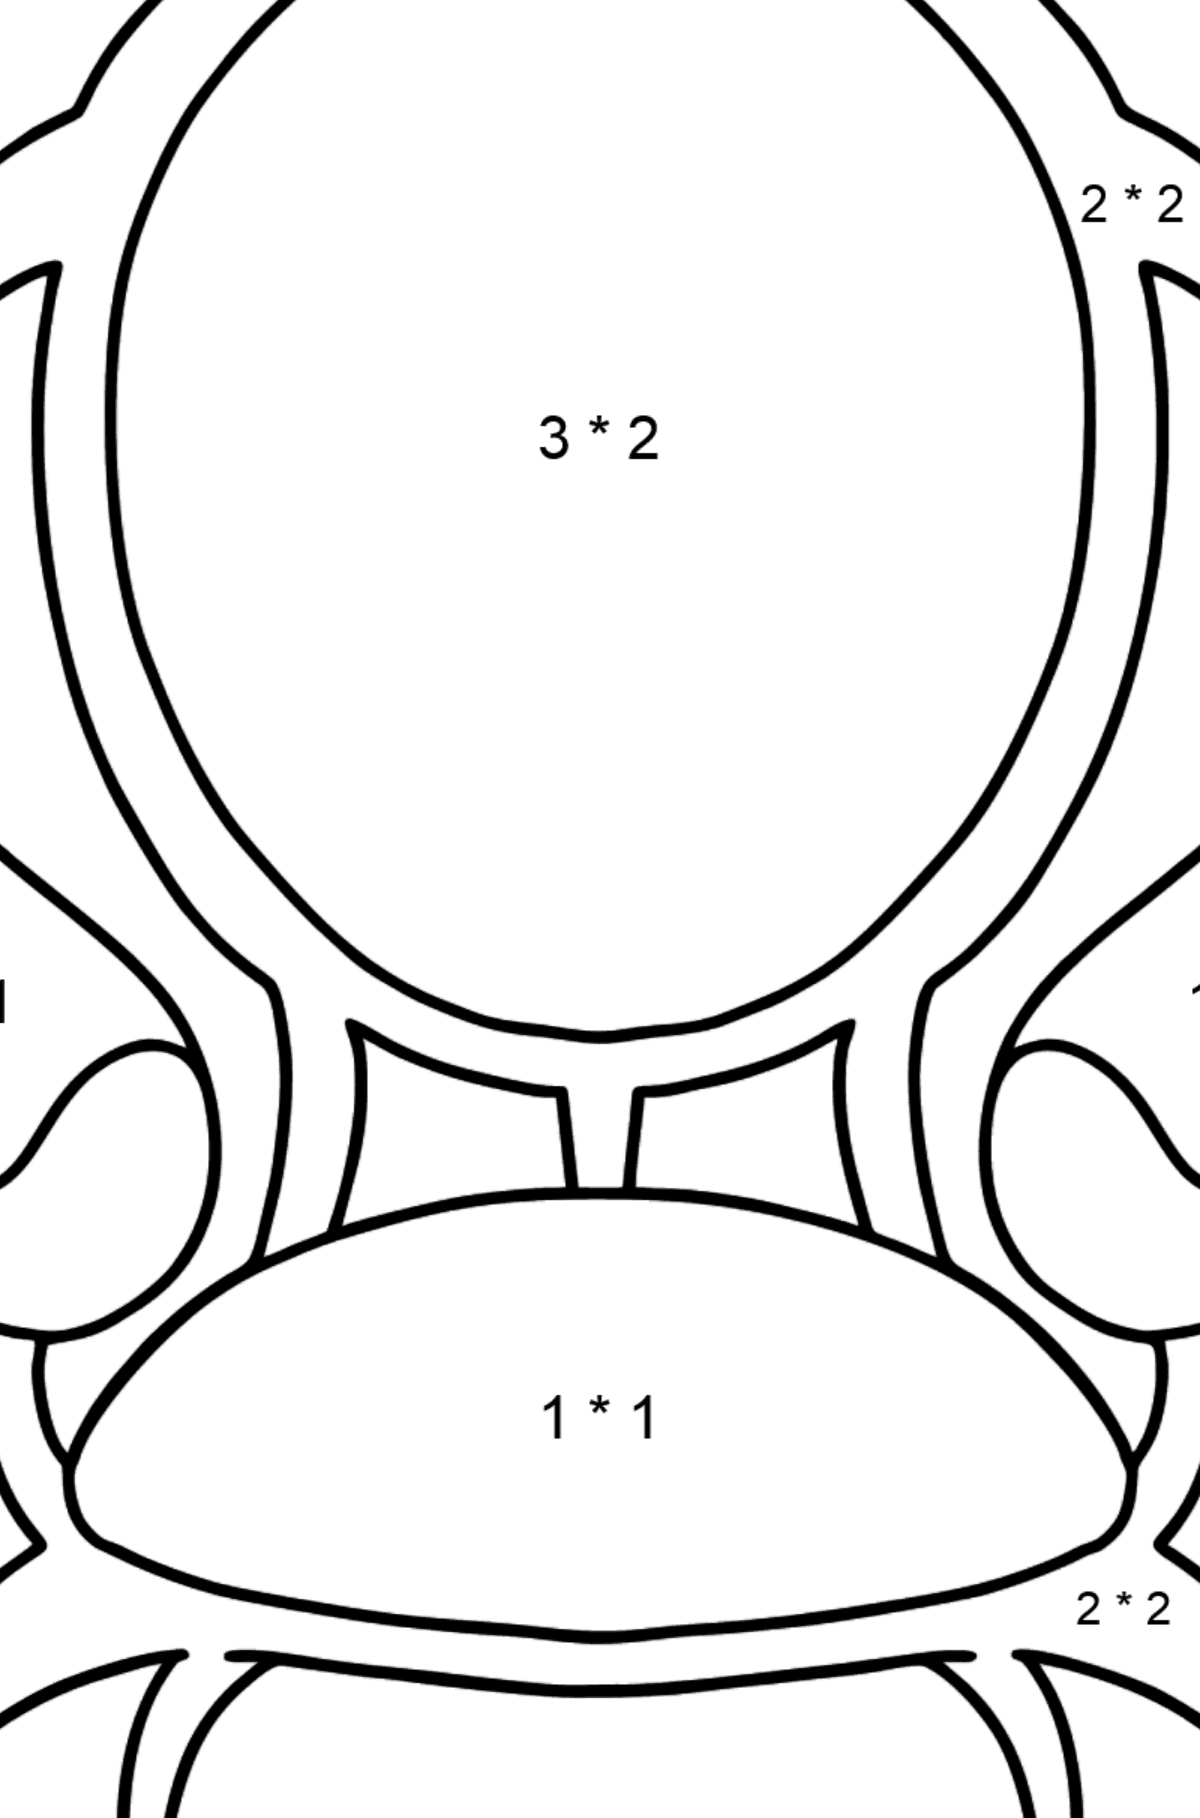 Soft Chair coloring page - Math Coloring - Multiplication for Kids